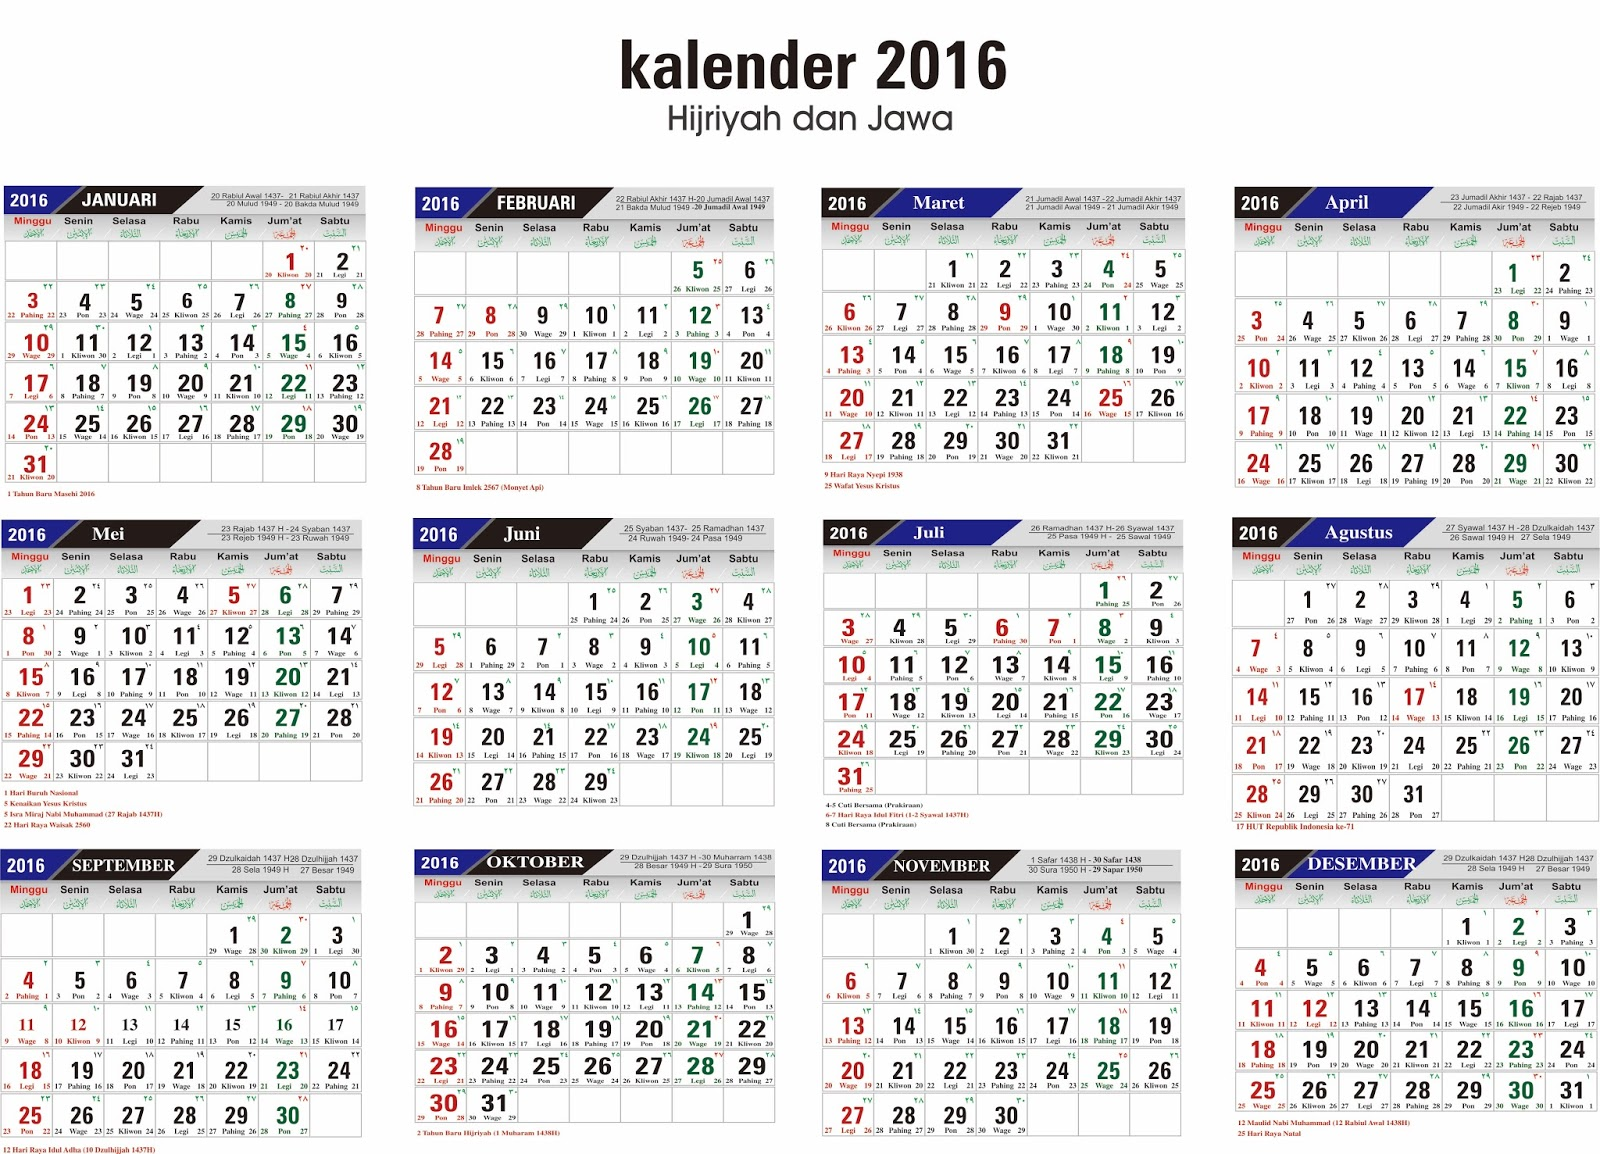 kalender indonesia 2015 online download kalender 2015 share the knownledge. Black Bedroom Furniture Sets. Home Design Ideas